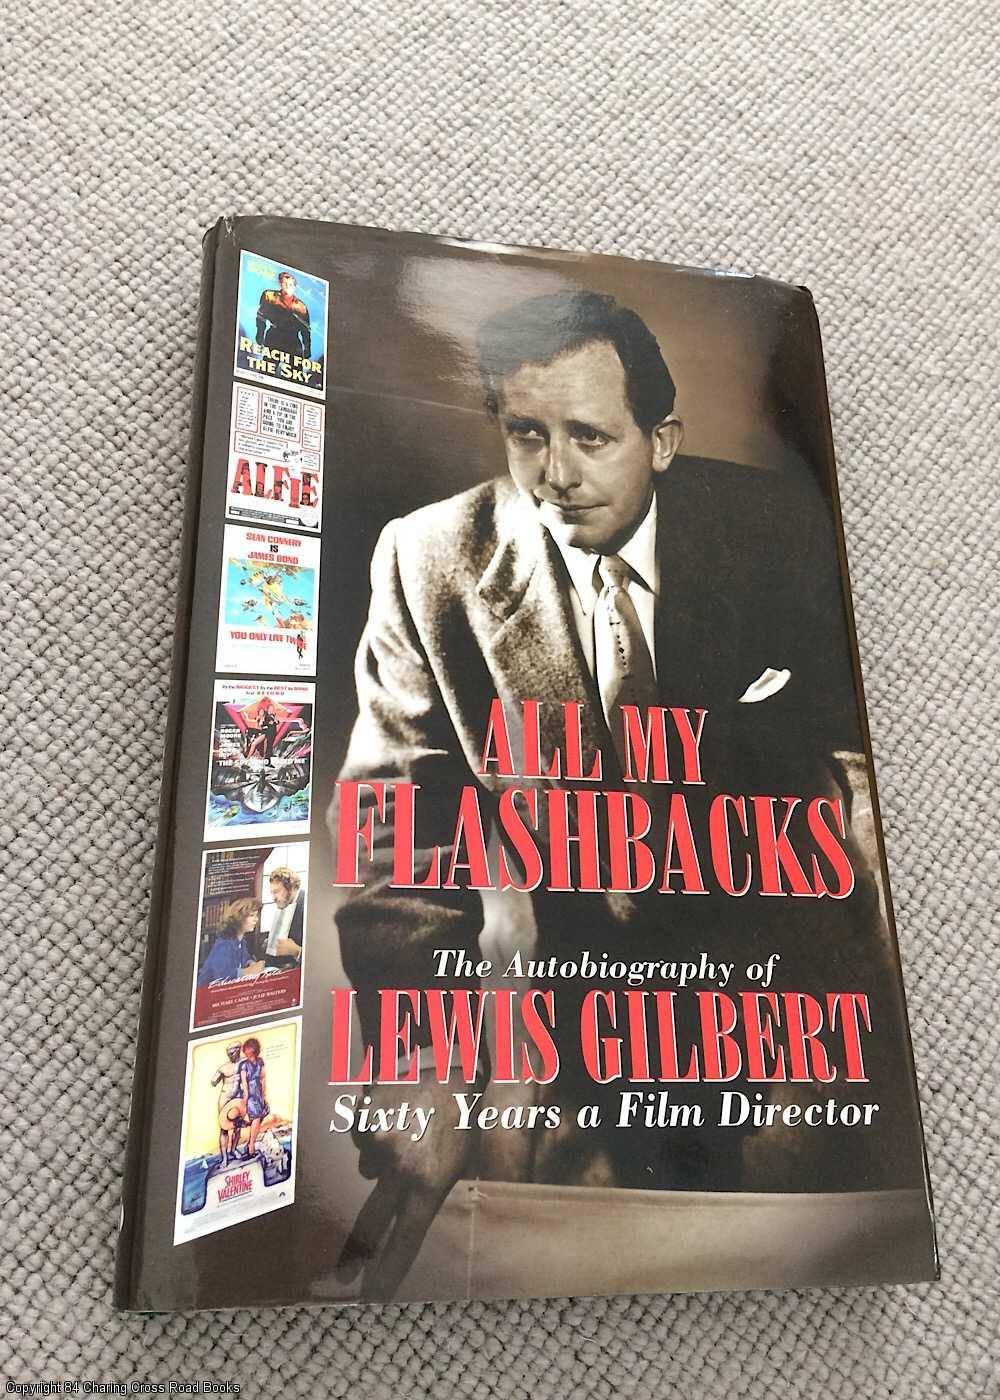 LEWIS GILBERT - All My Flashbacks: The Autobiography of Lewis Gilbert Sixty Years a Film Director